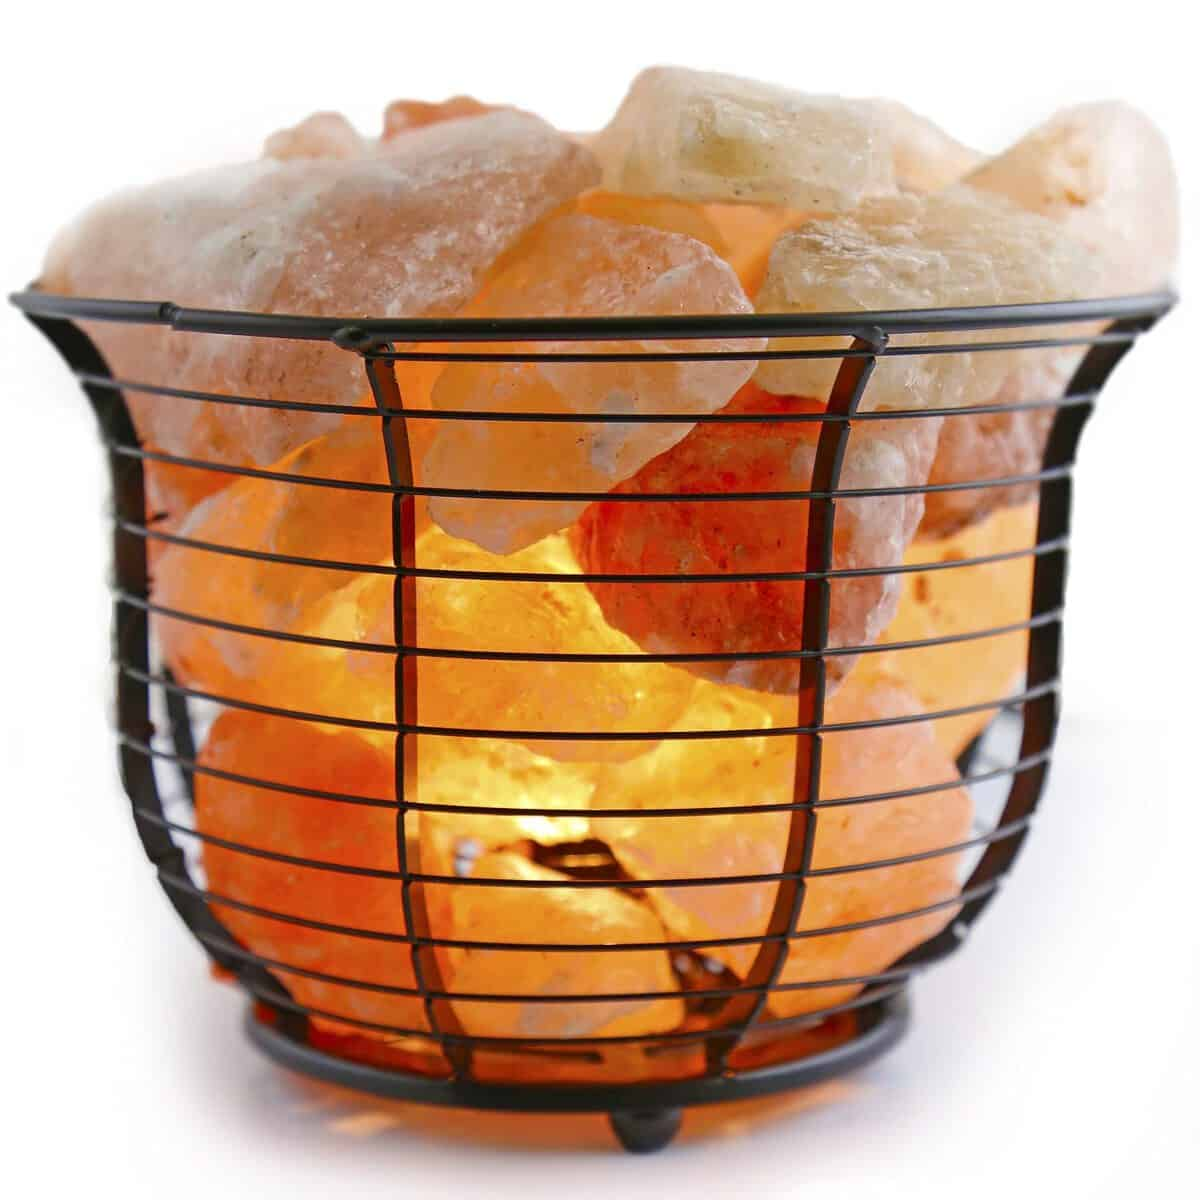 10 Reasons to Place A Himalayan Salt Lamp In Your Home DIY Cozy Home